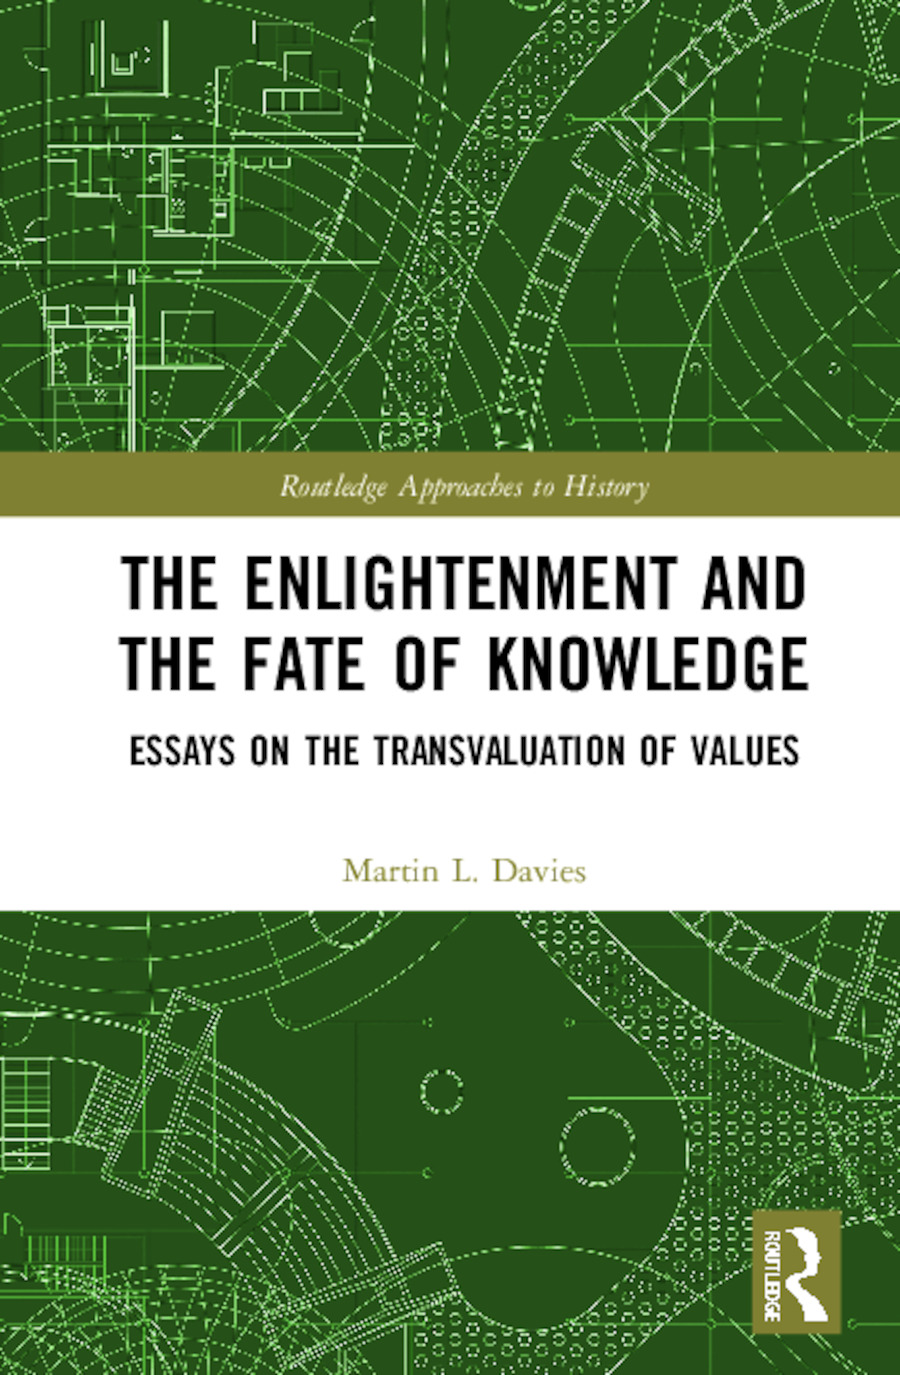 The Enlightenment and the Fate of Knowledge: Essays on the Transvaluation of Values book cover